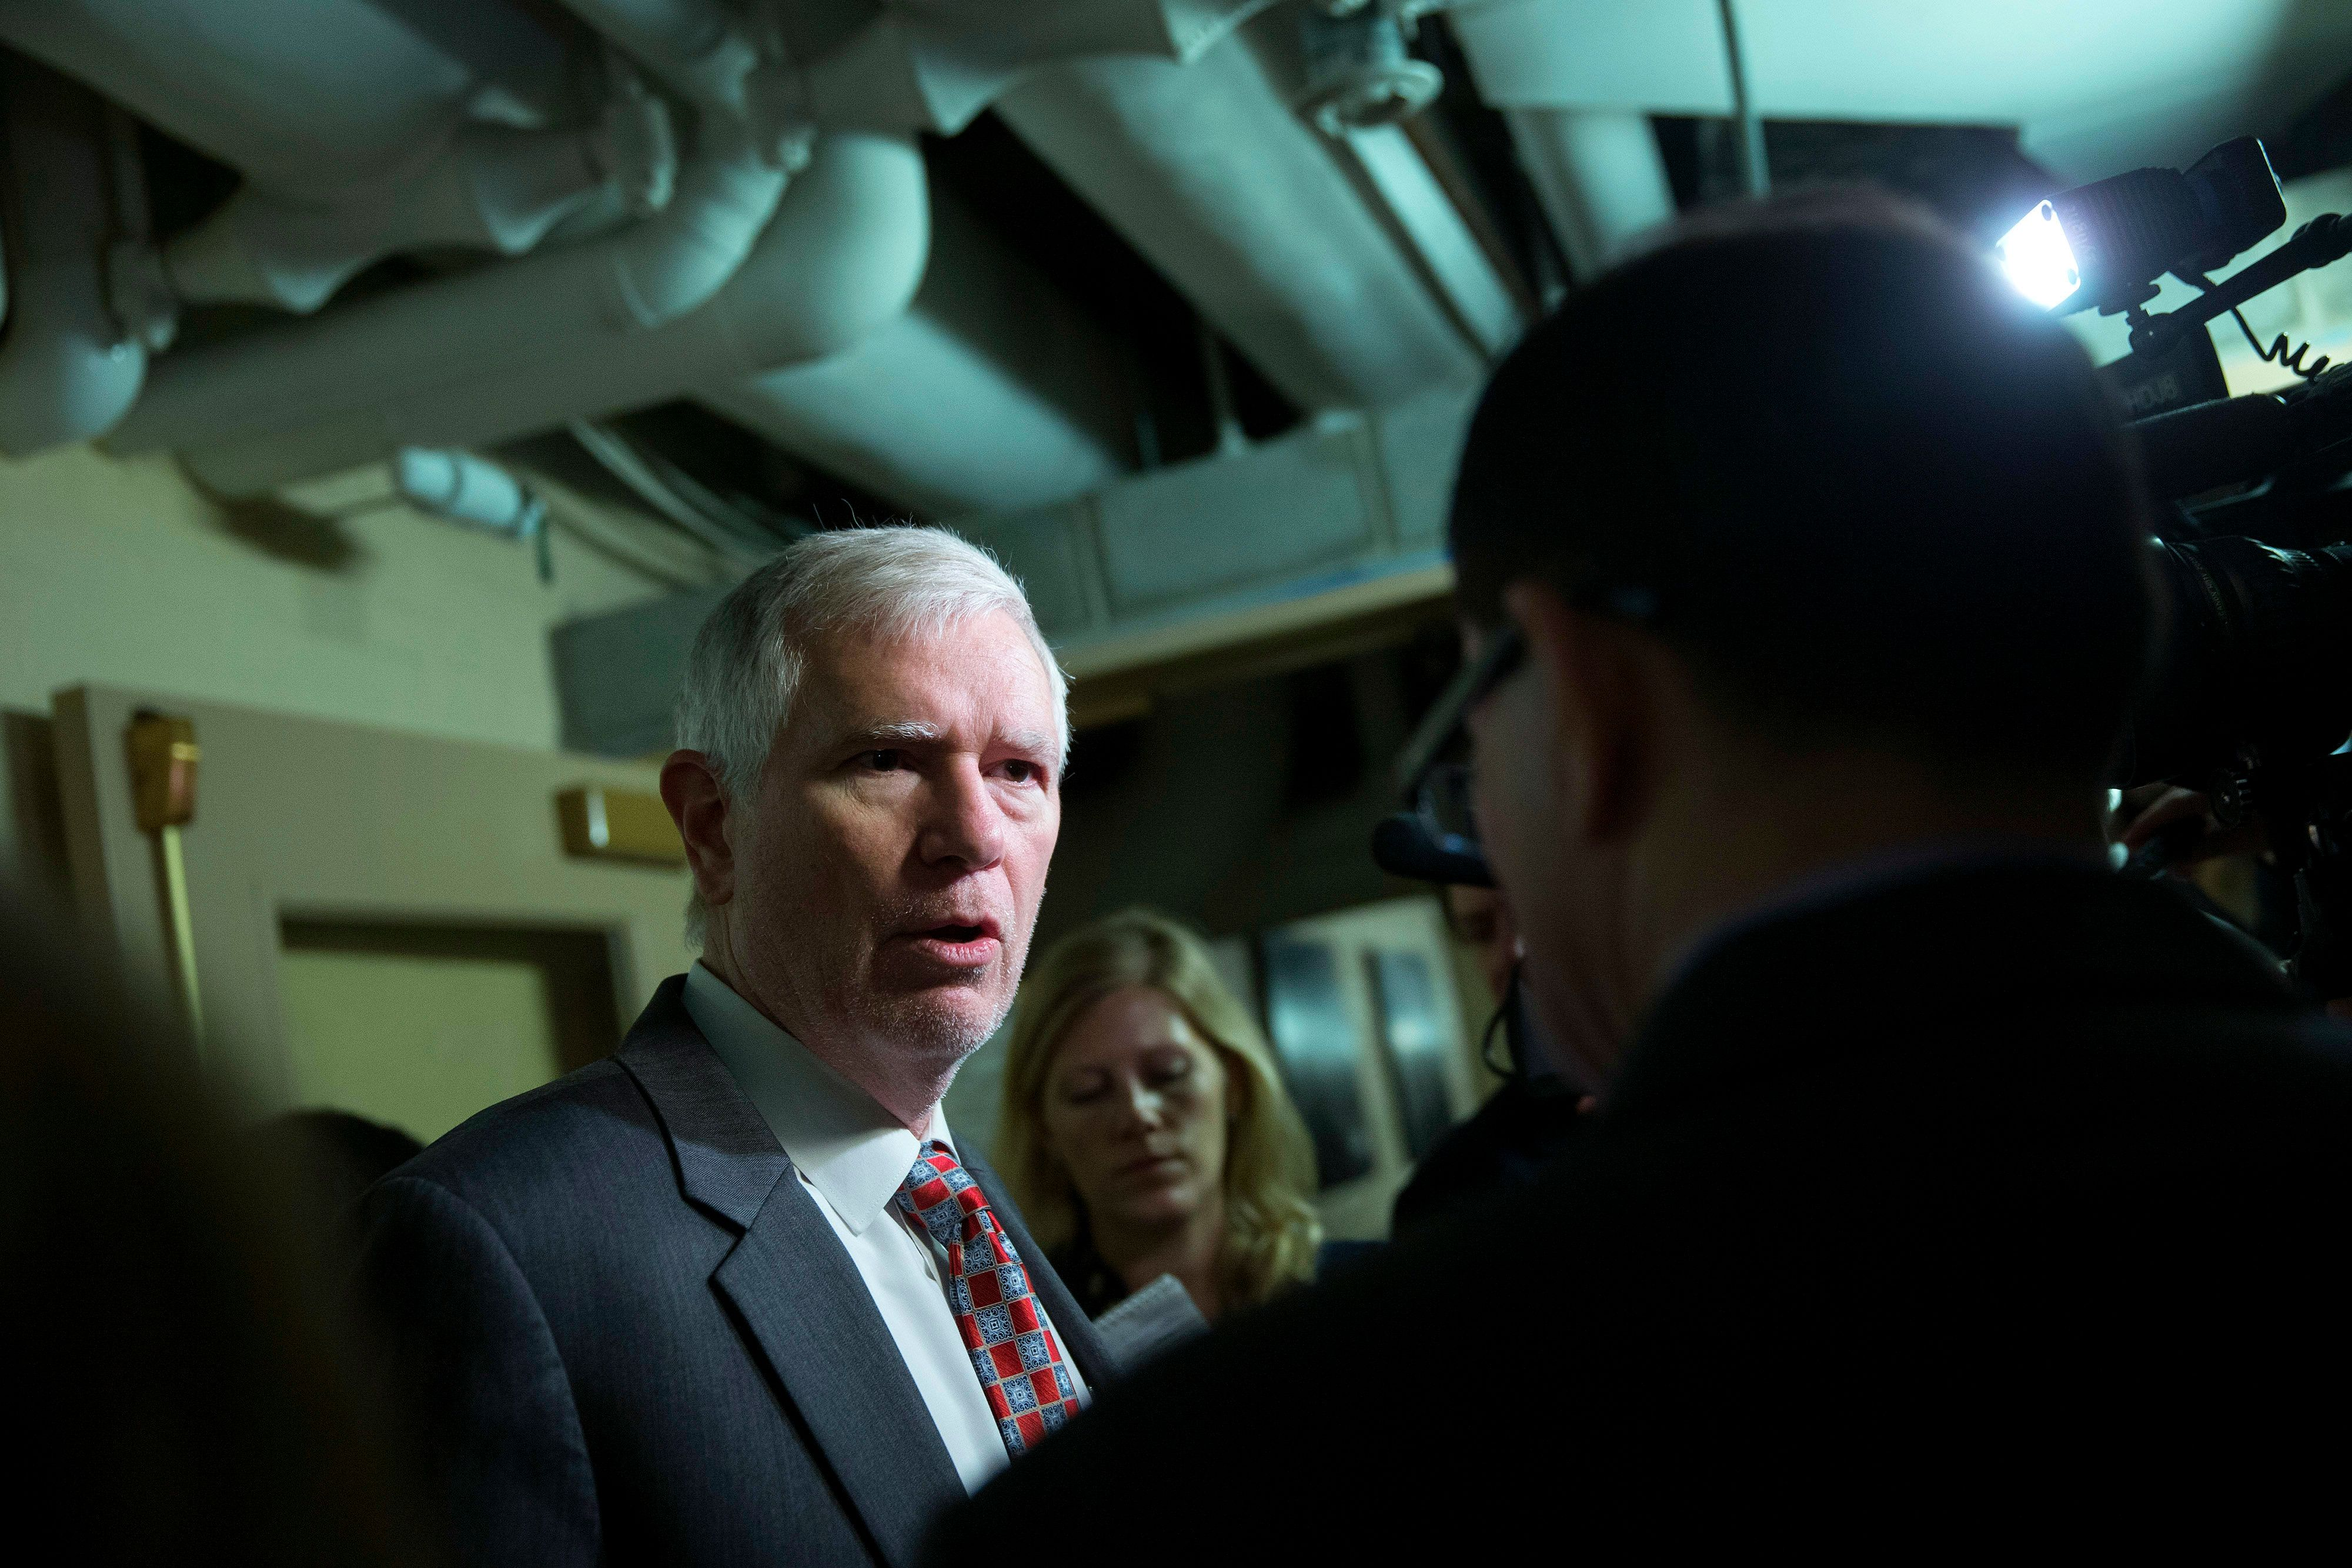 Rep. Mo Brooks (R-Ala.) is a plaintiff in a suit seeking to bar the Census Bureau from counting undocumented residents.